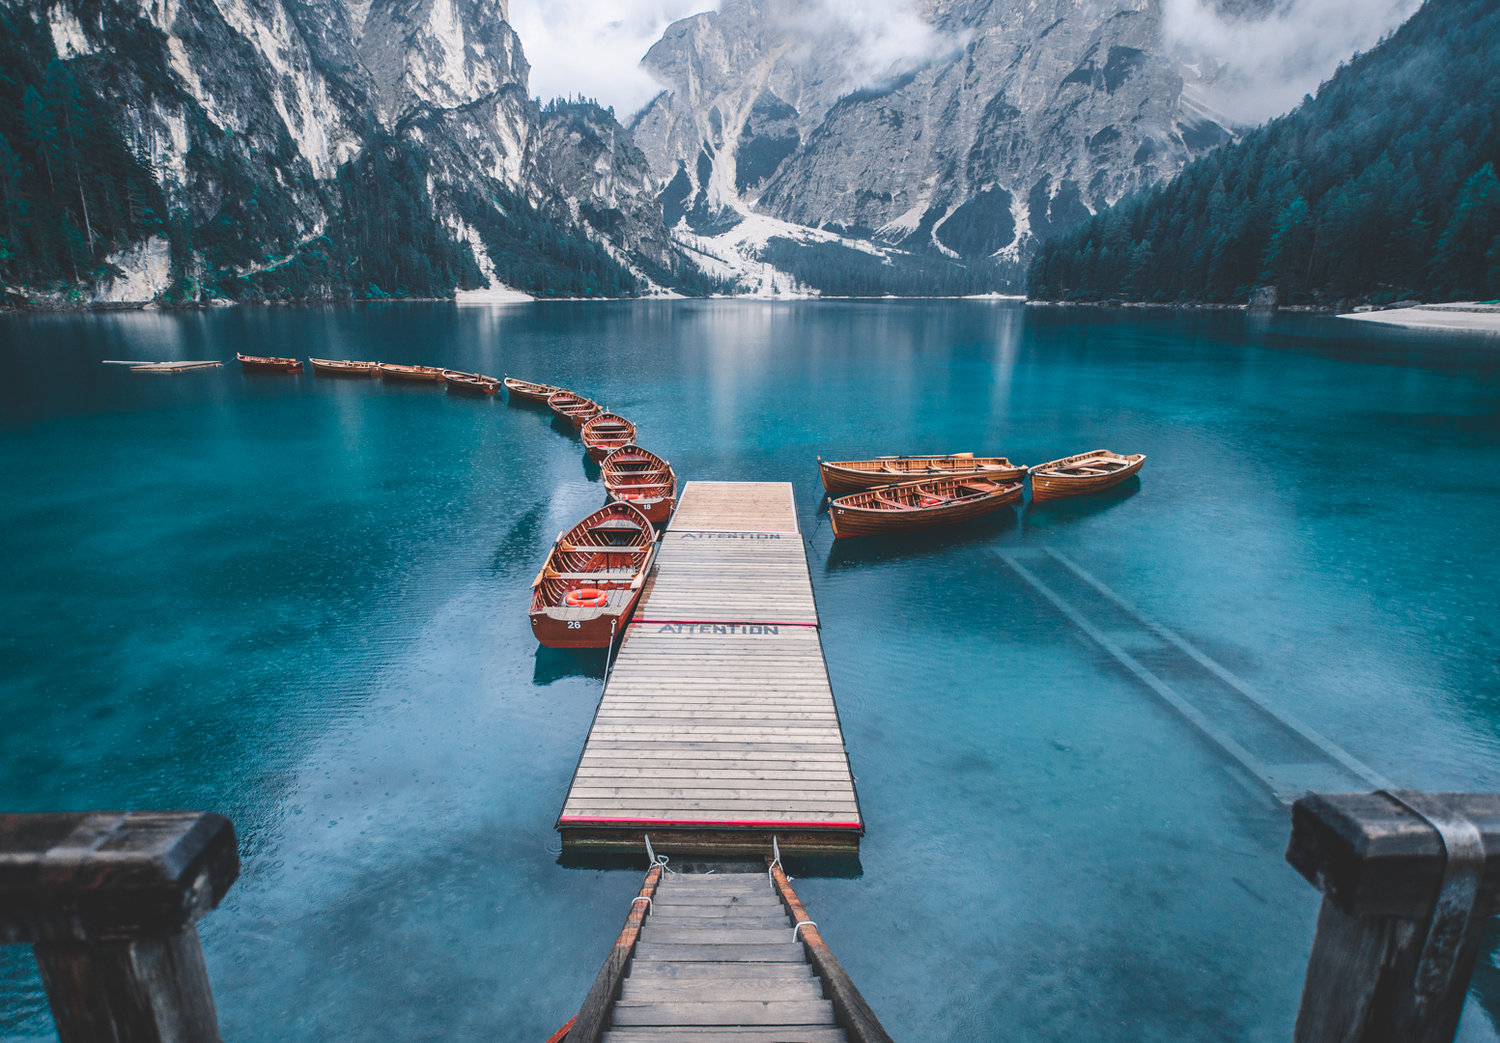 Lago+Di+Braies+Geoff+Photography.jpg